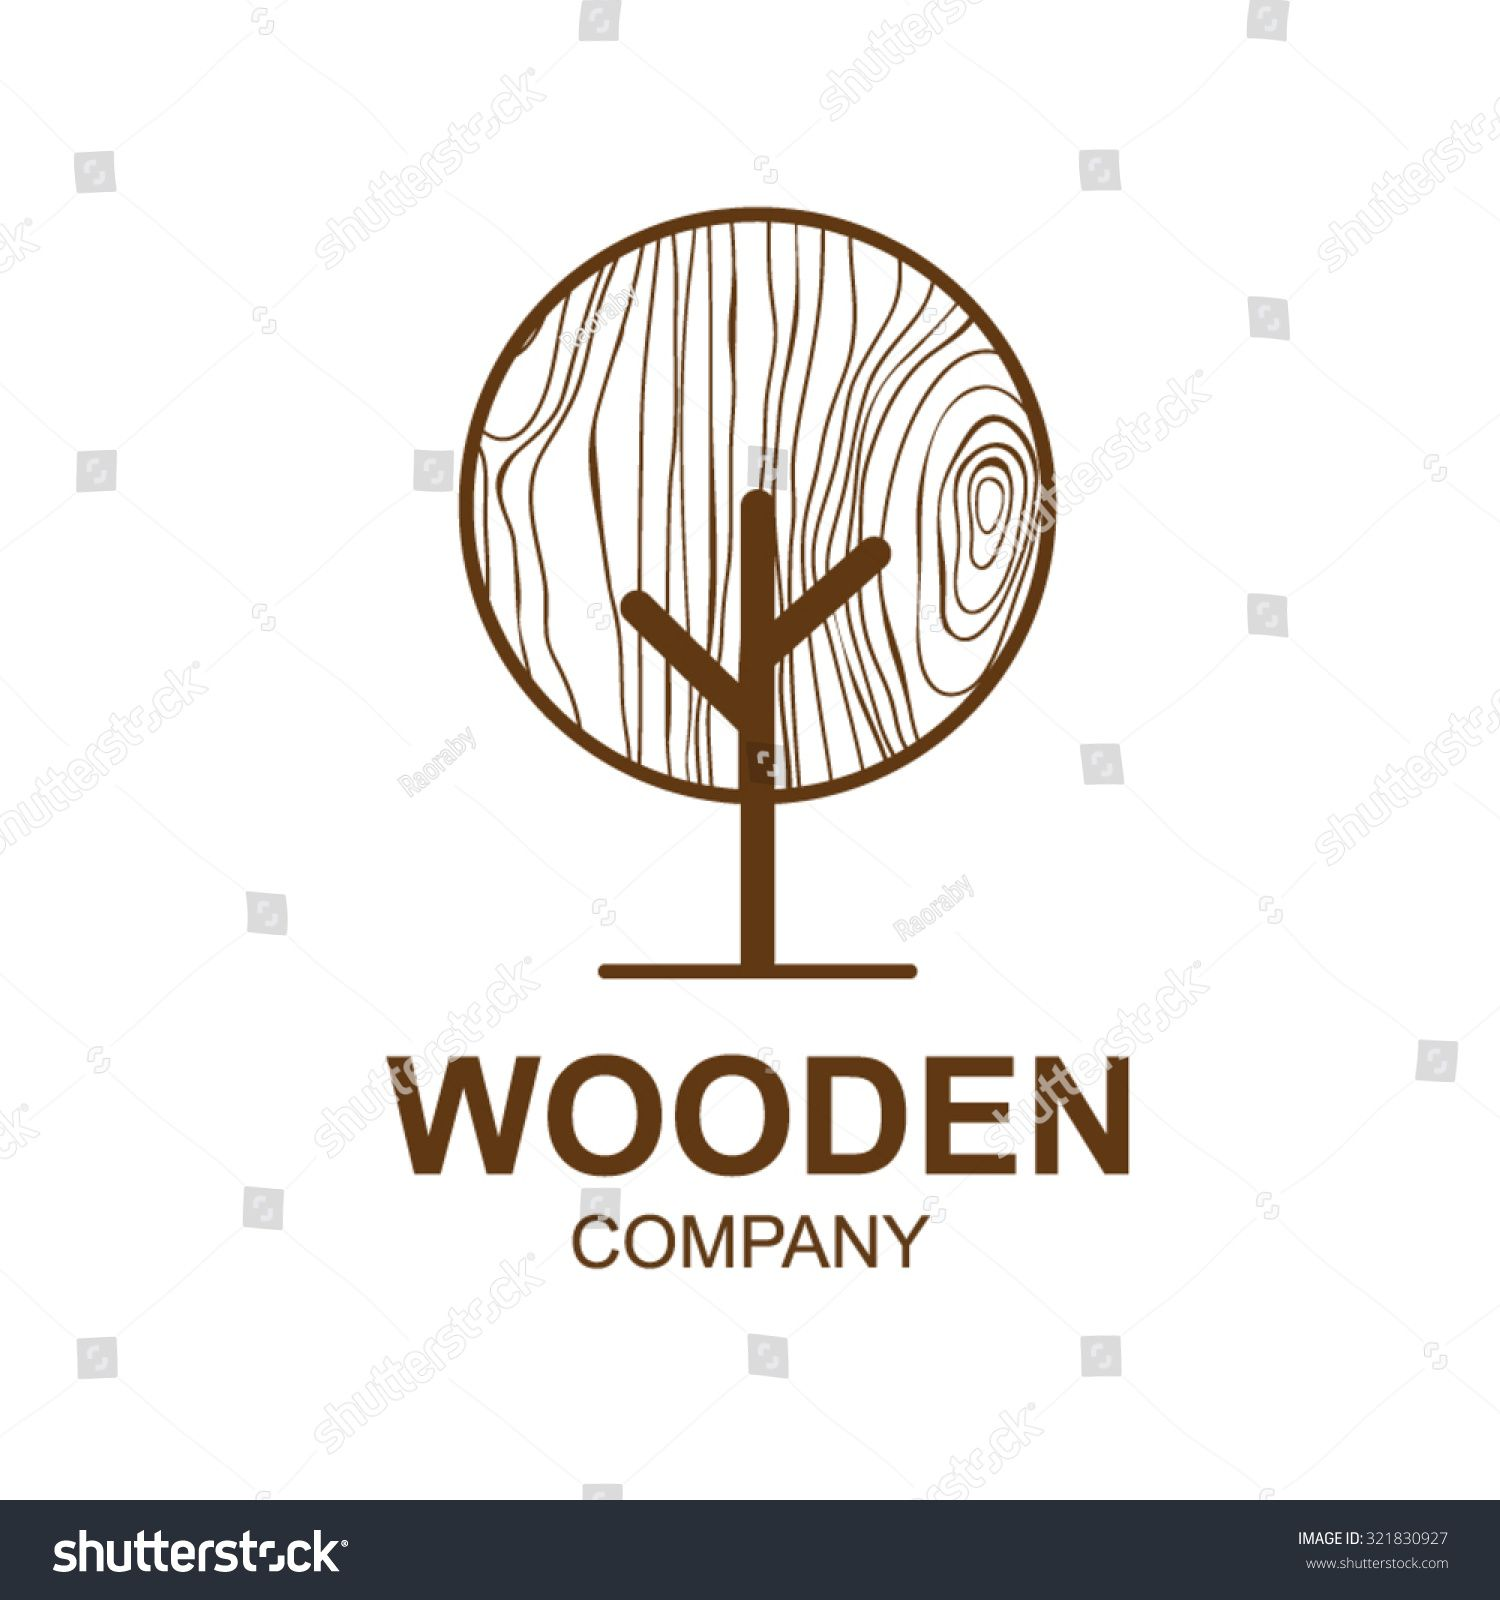 Abstract icon with wooden texture,tree Logo design,Vector